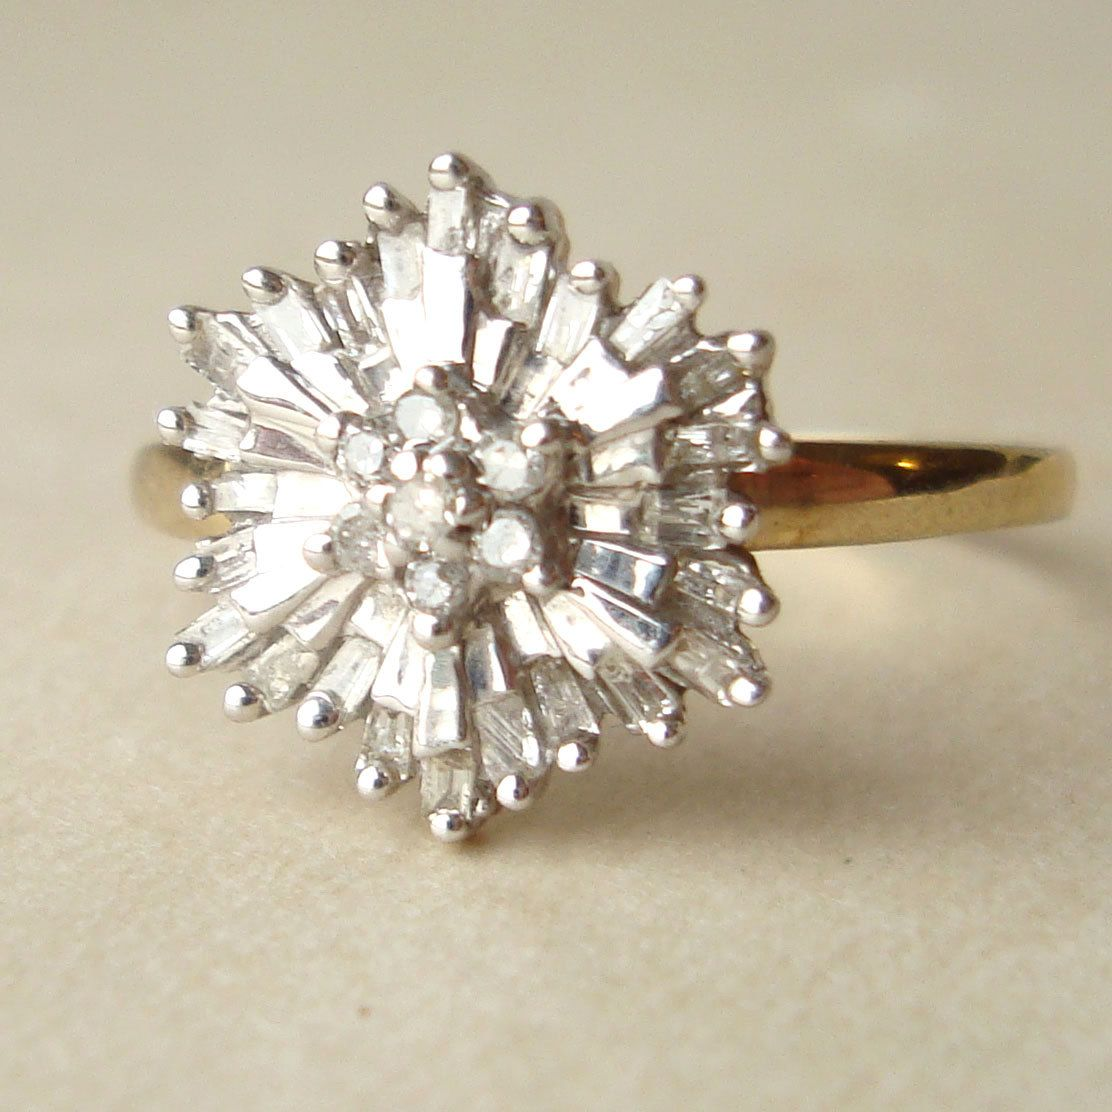 vintage wedding rings s Baguette Diamond Starburst Ring Vintage Diamond Flower Ring 9k Gold Size US 7 75